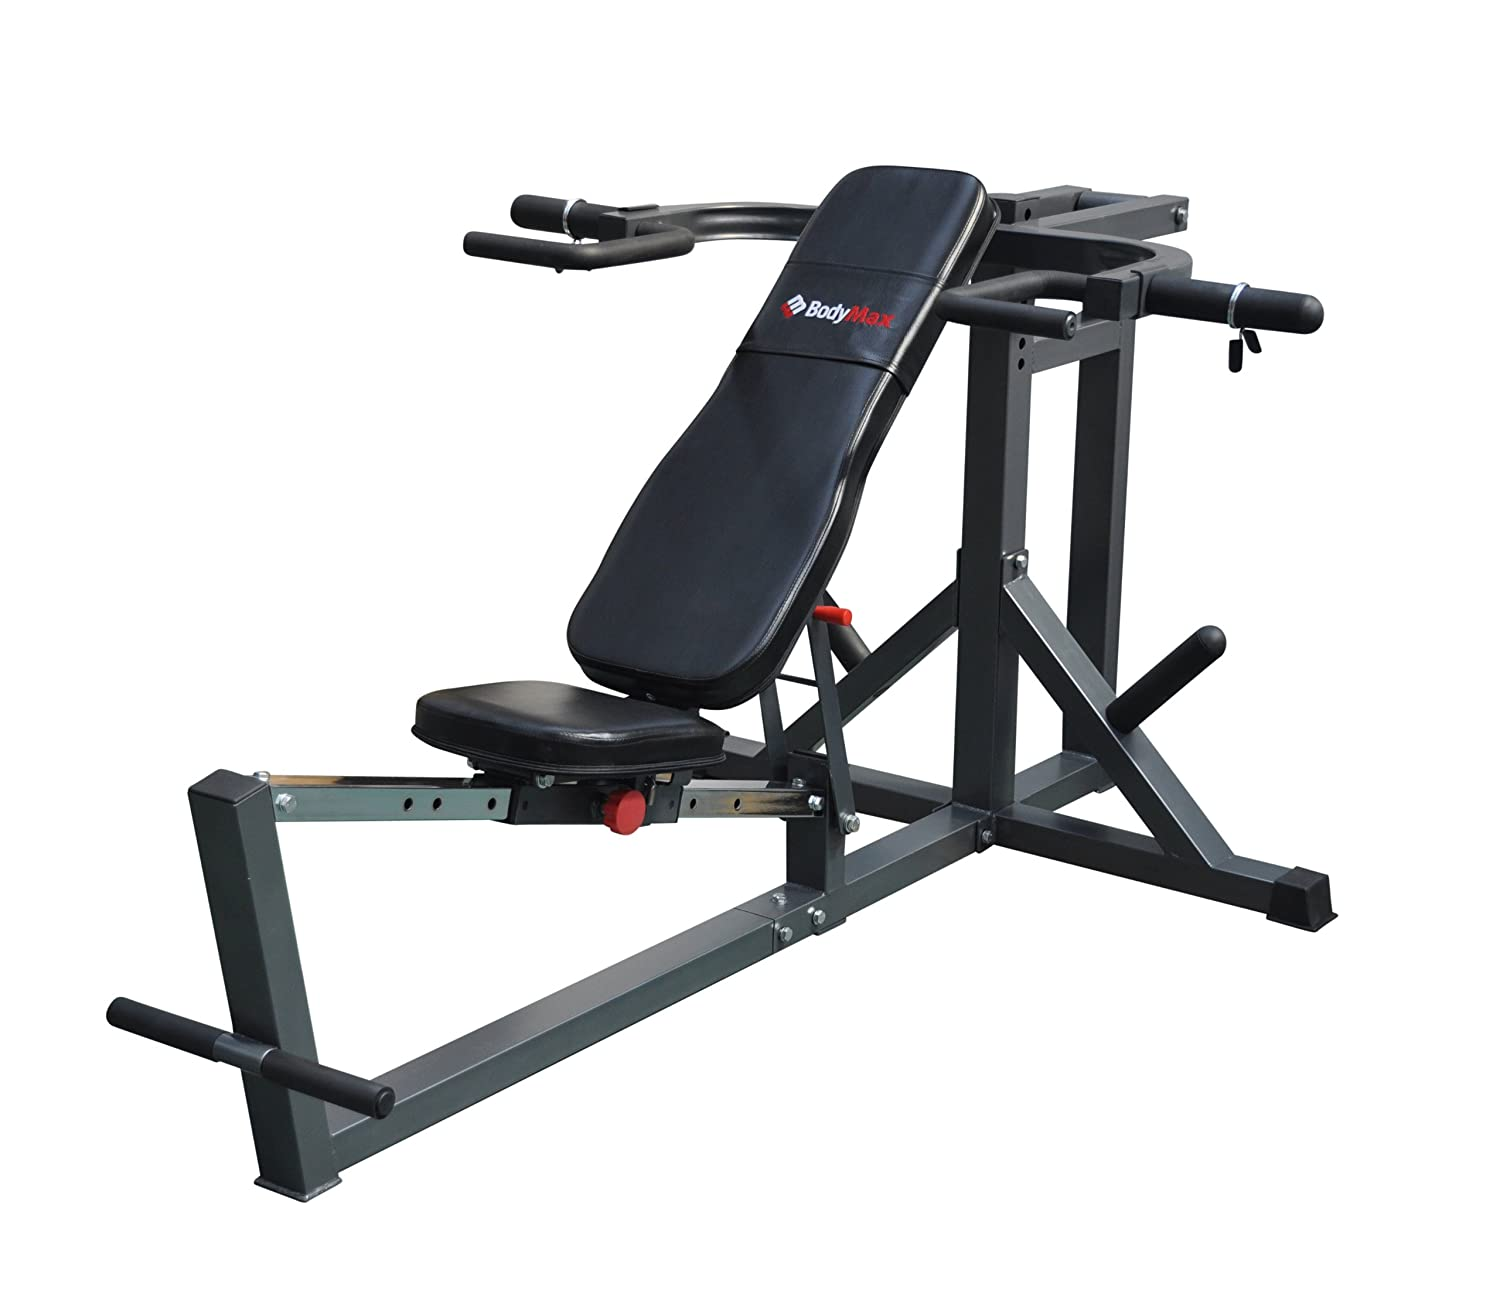 Exercise Bench For Sale Chair Where Can I Buy A Bench Press Exercise Bench Price 3 In 1 Cheap